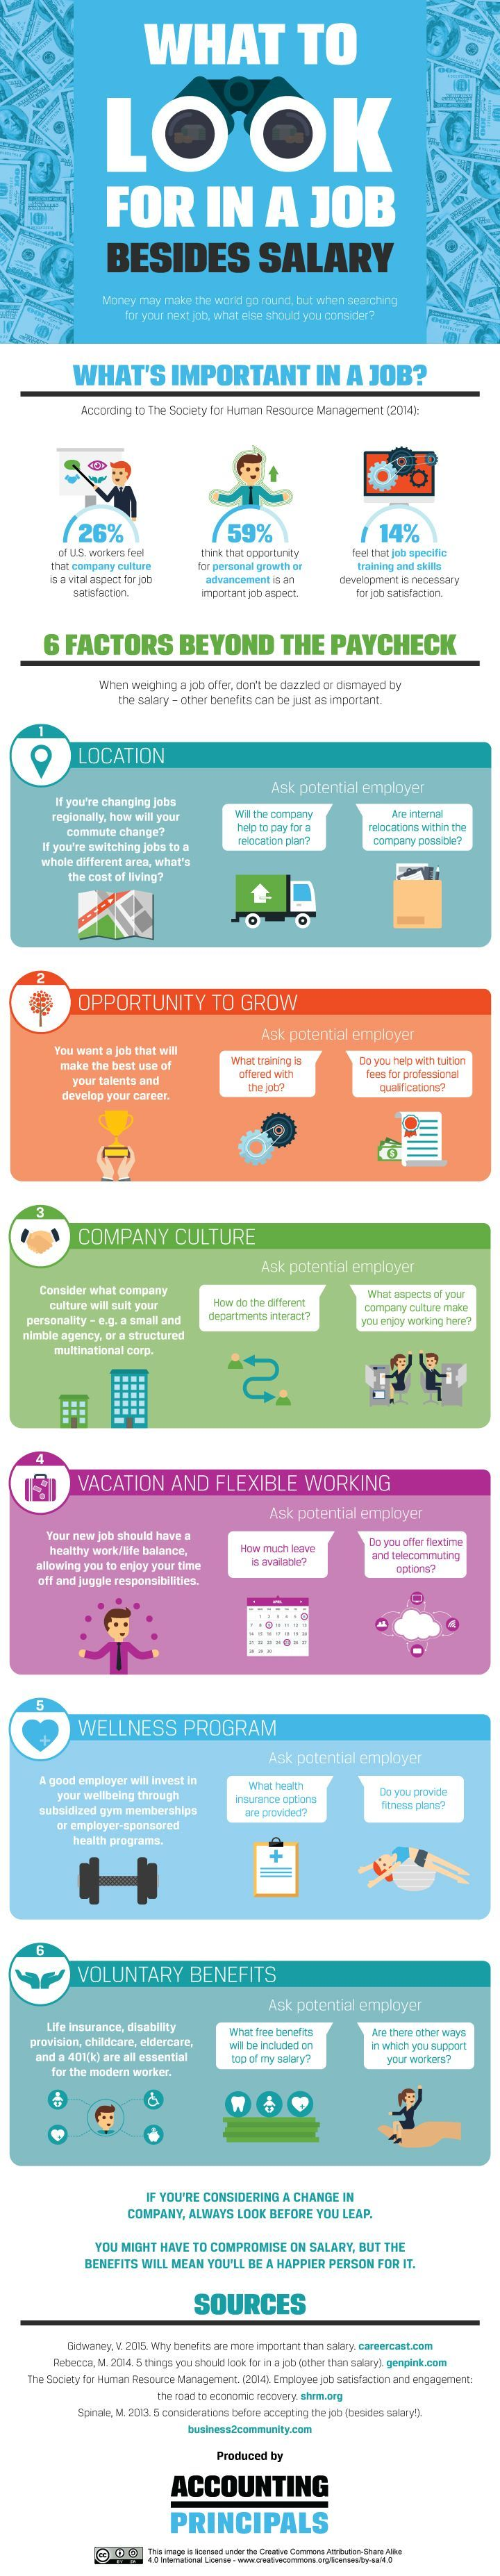 What to Look for in a Job Beyond the Salary #infographic